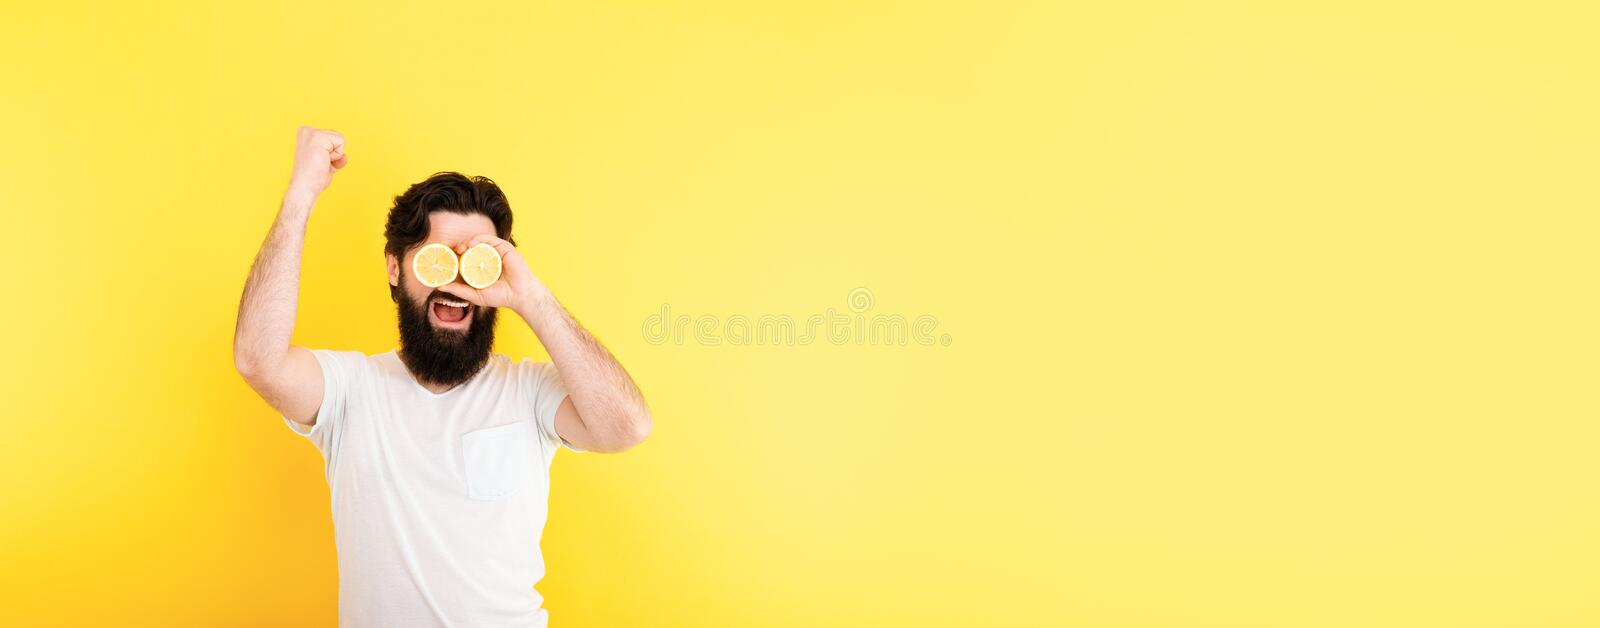 Man with lemon slices royalty free stock images